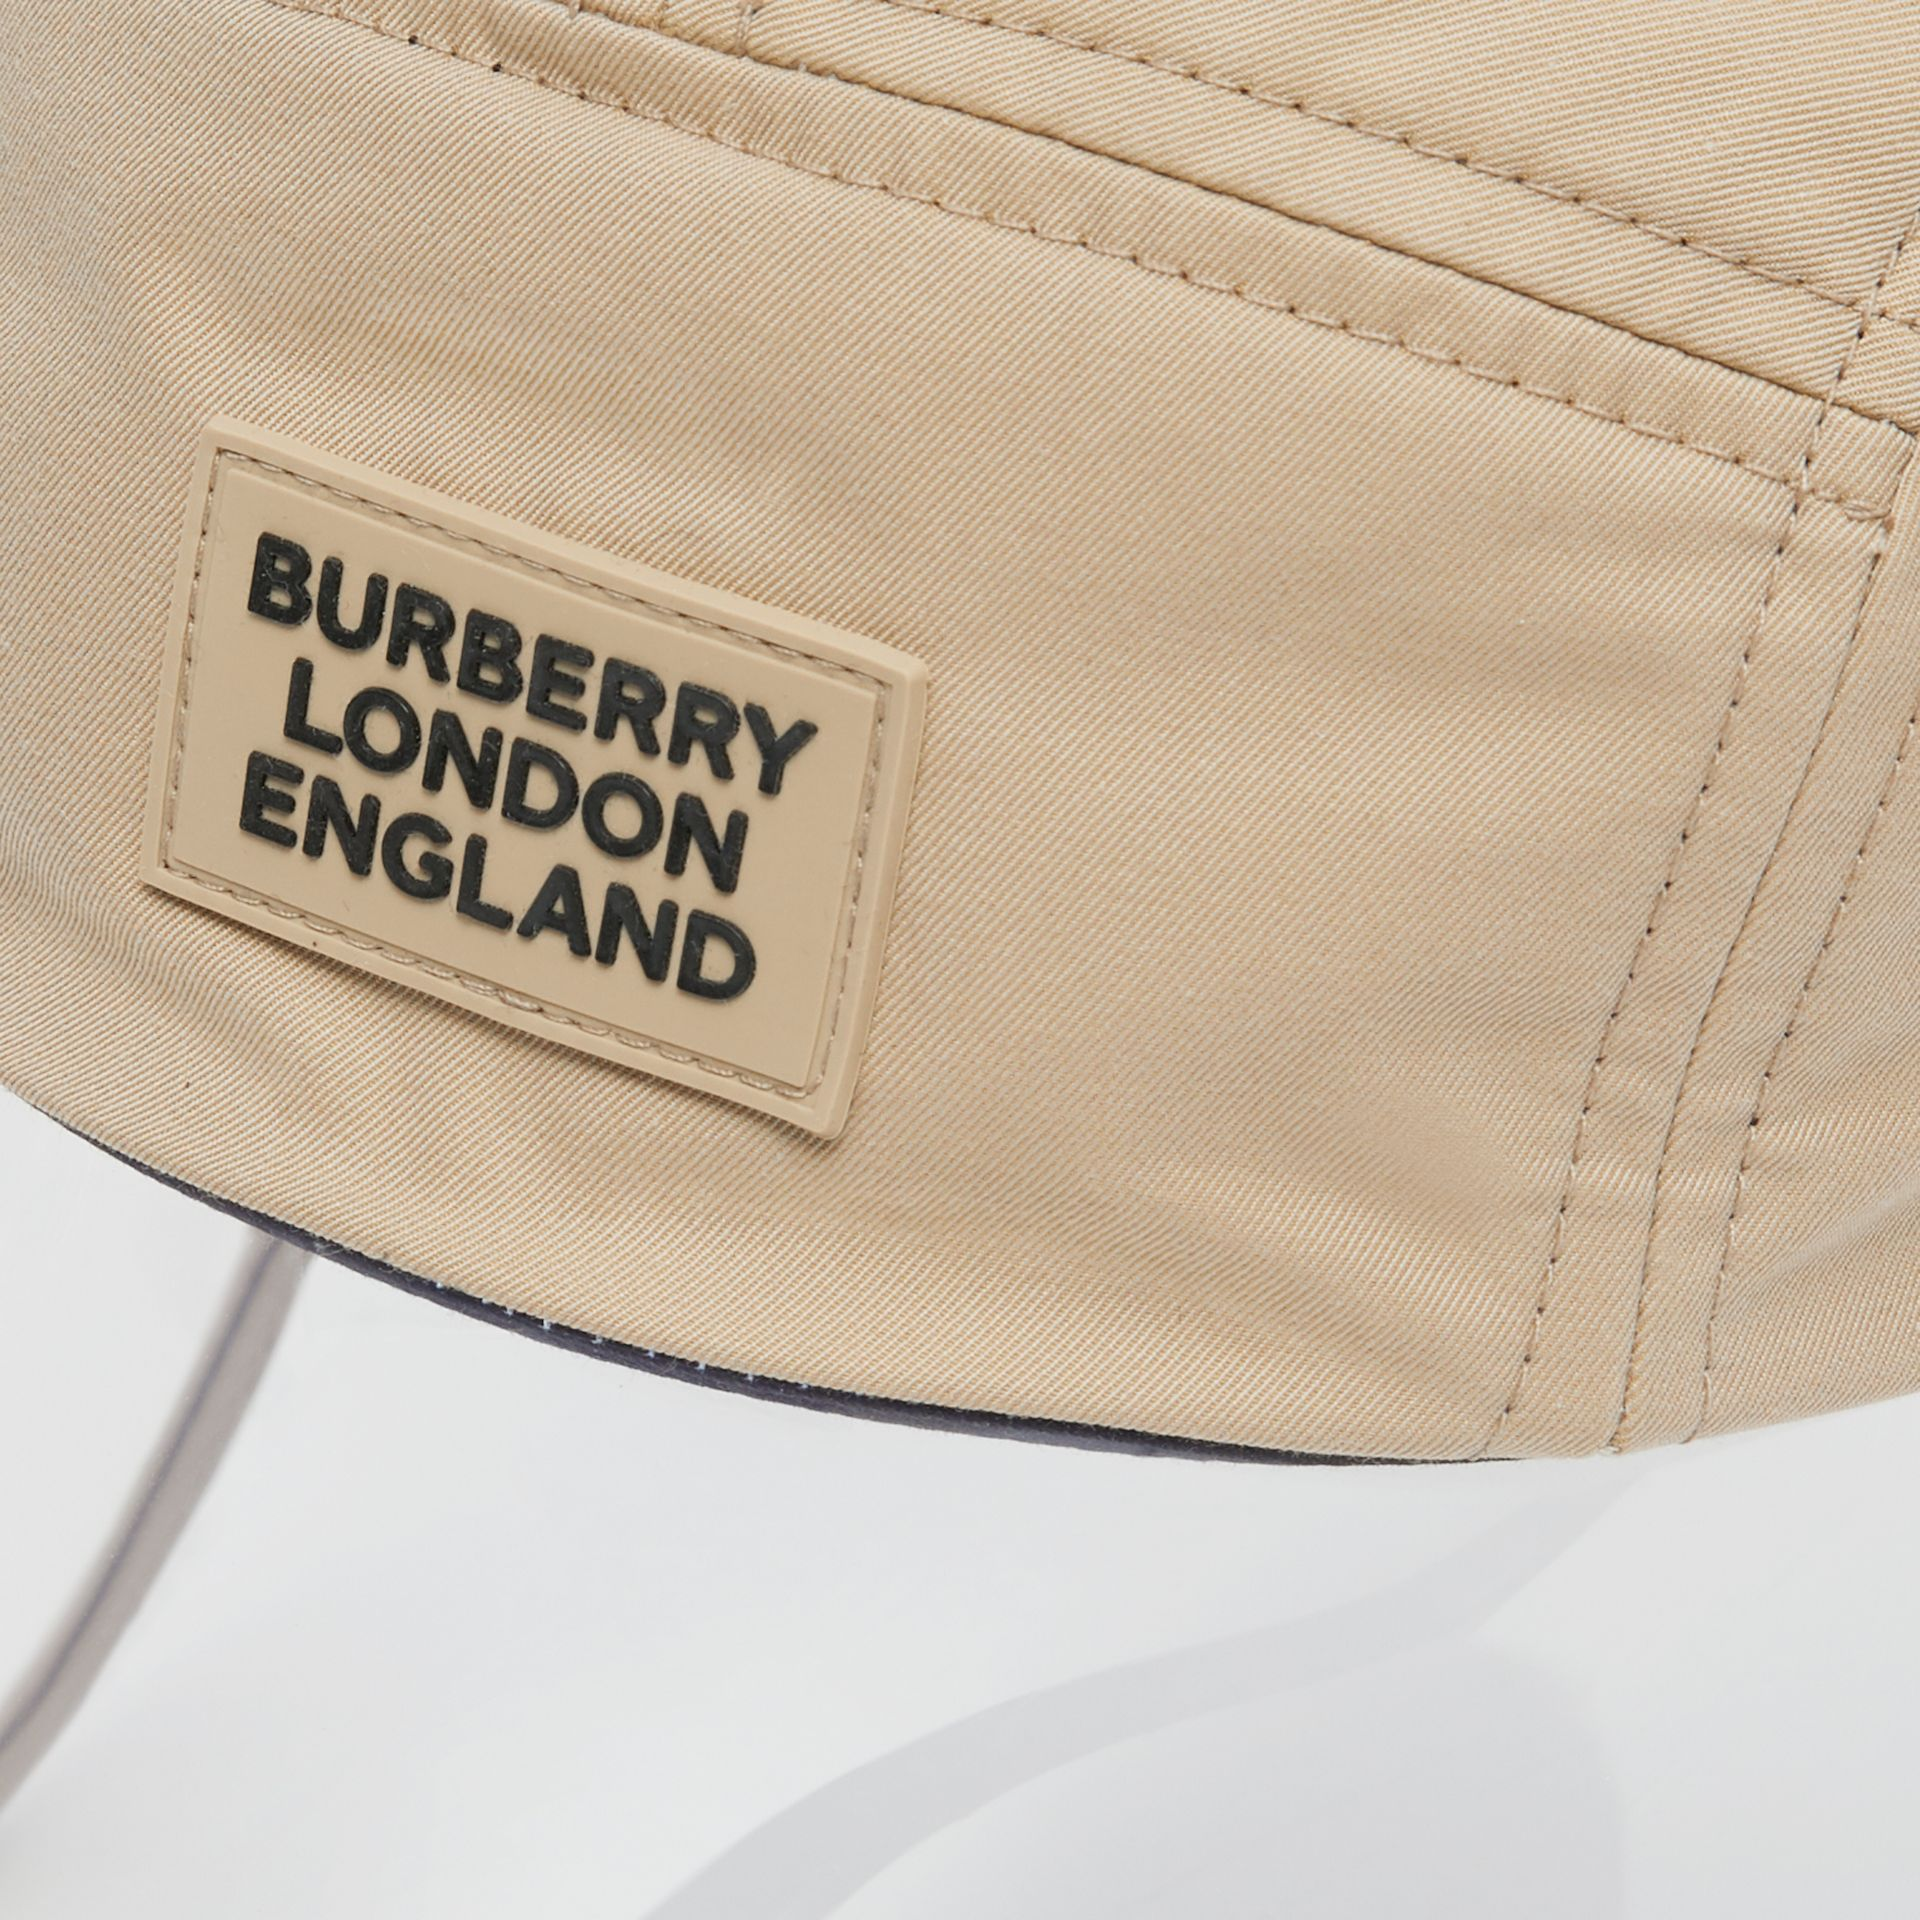 Casquette à bords larges transparente en sergé de coton - Exclusivité en ligne (Fauve Doux) | Burberry - photo de la galerie 1